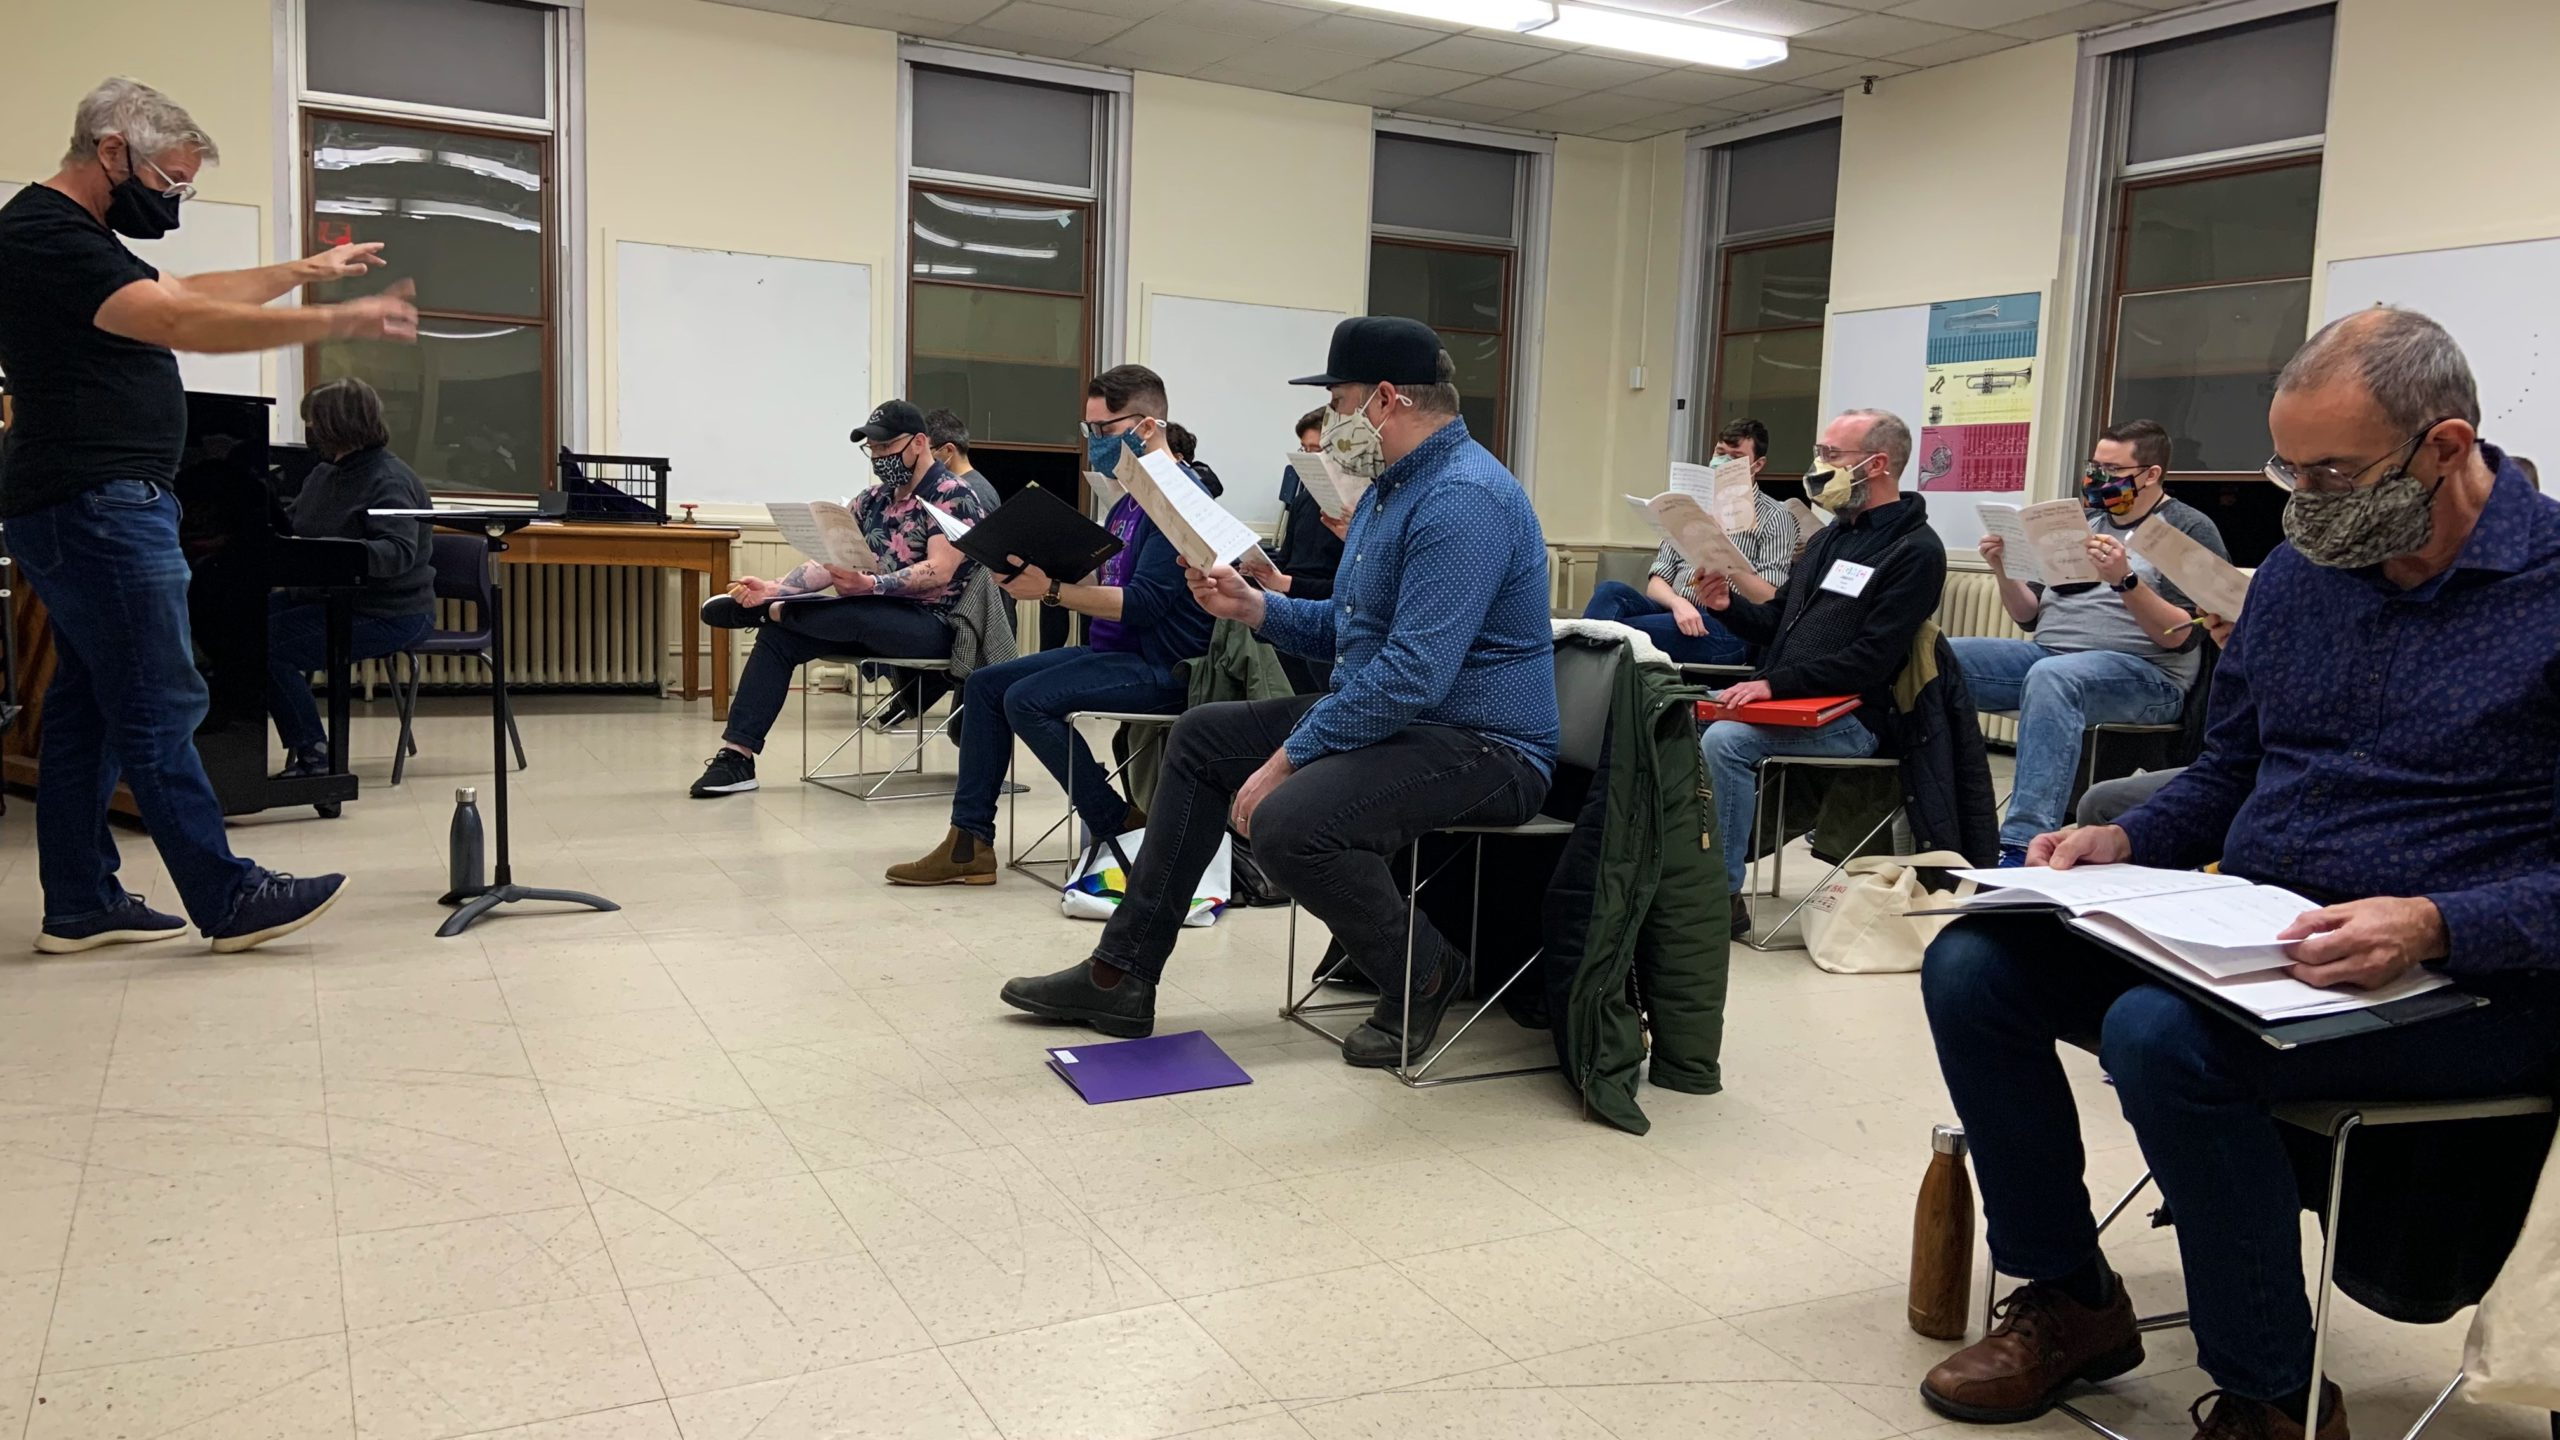 The Halifax Gay Men's Chorus rehearse for the first time this year.